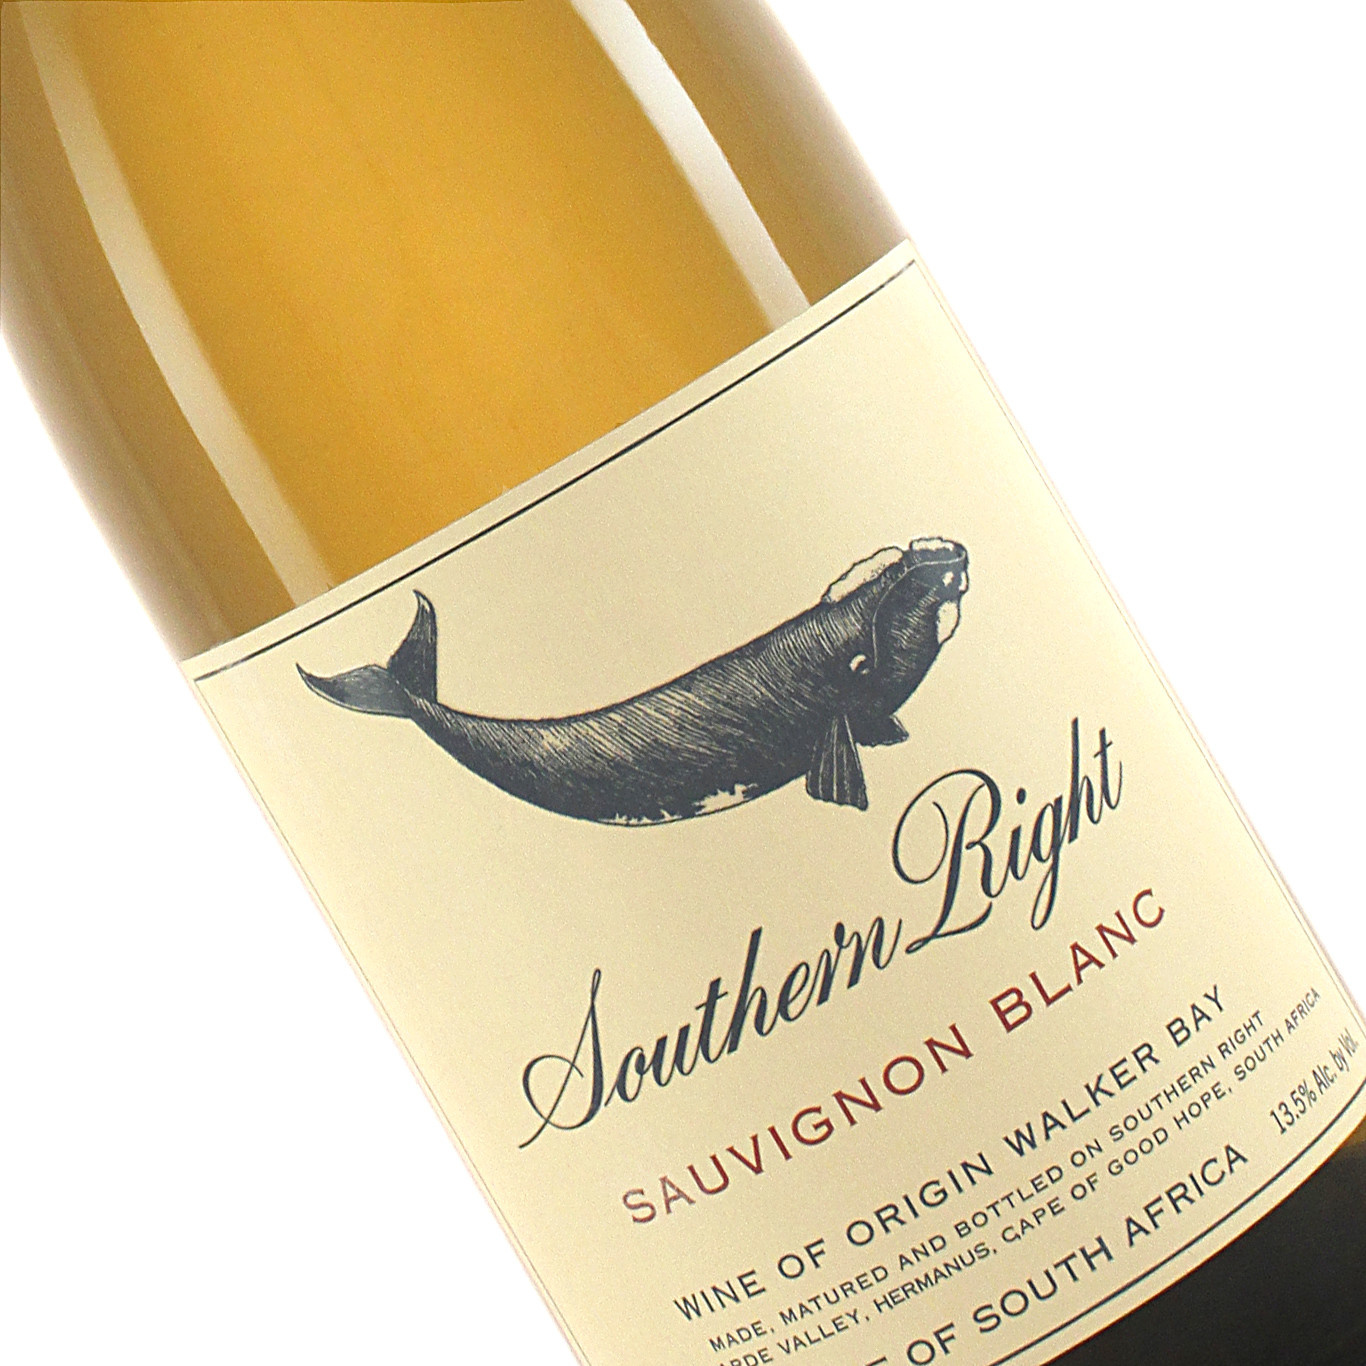 Southern Right 2017 Sauvignon Blanc, South Africa